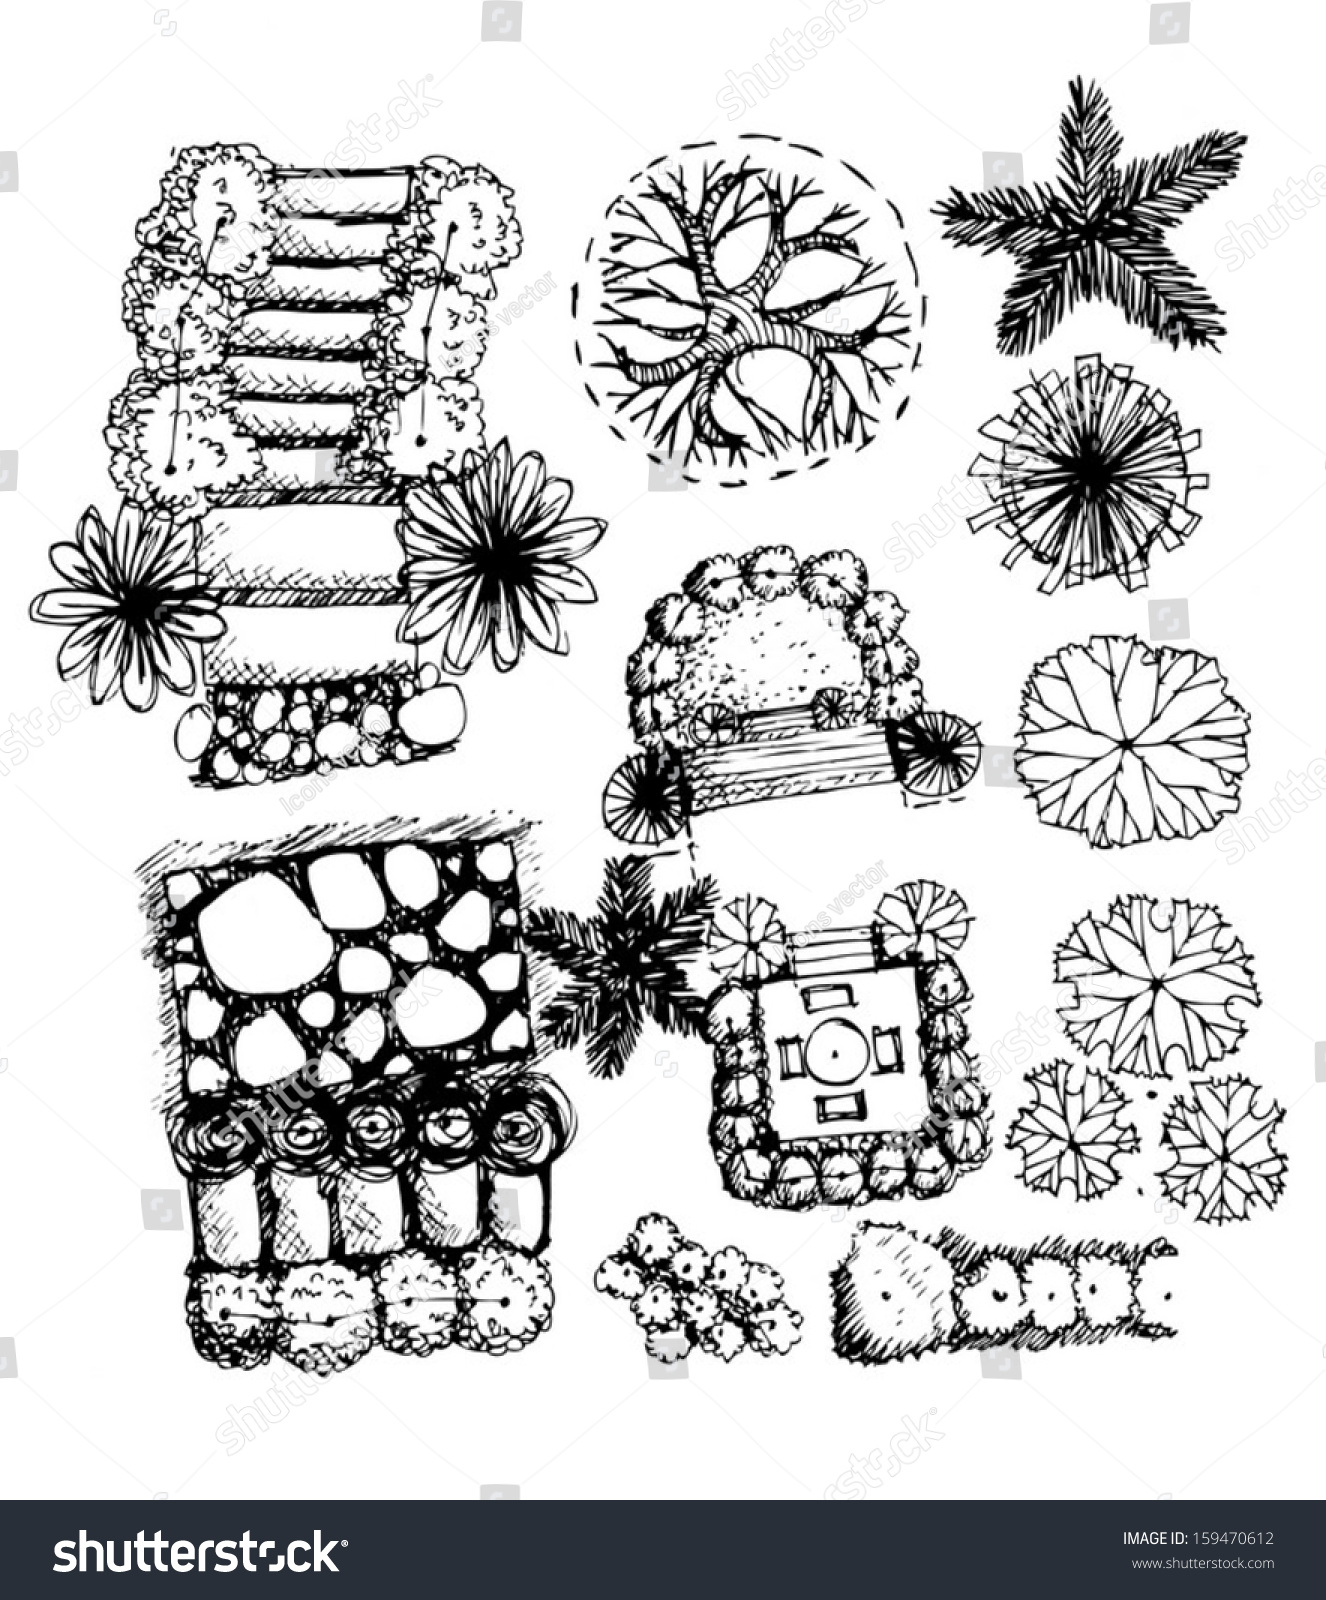 Plan Of Landscape And Garden Trees Top View For Architecture Design Projects